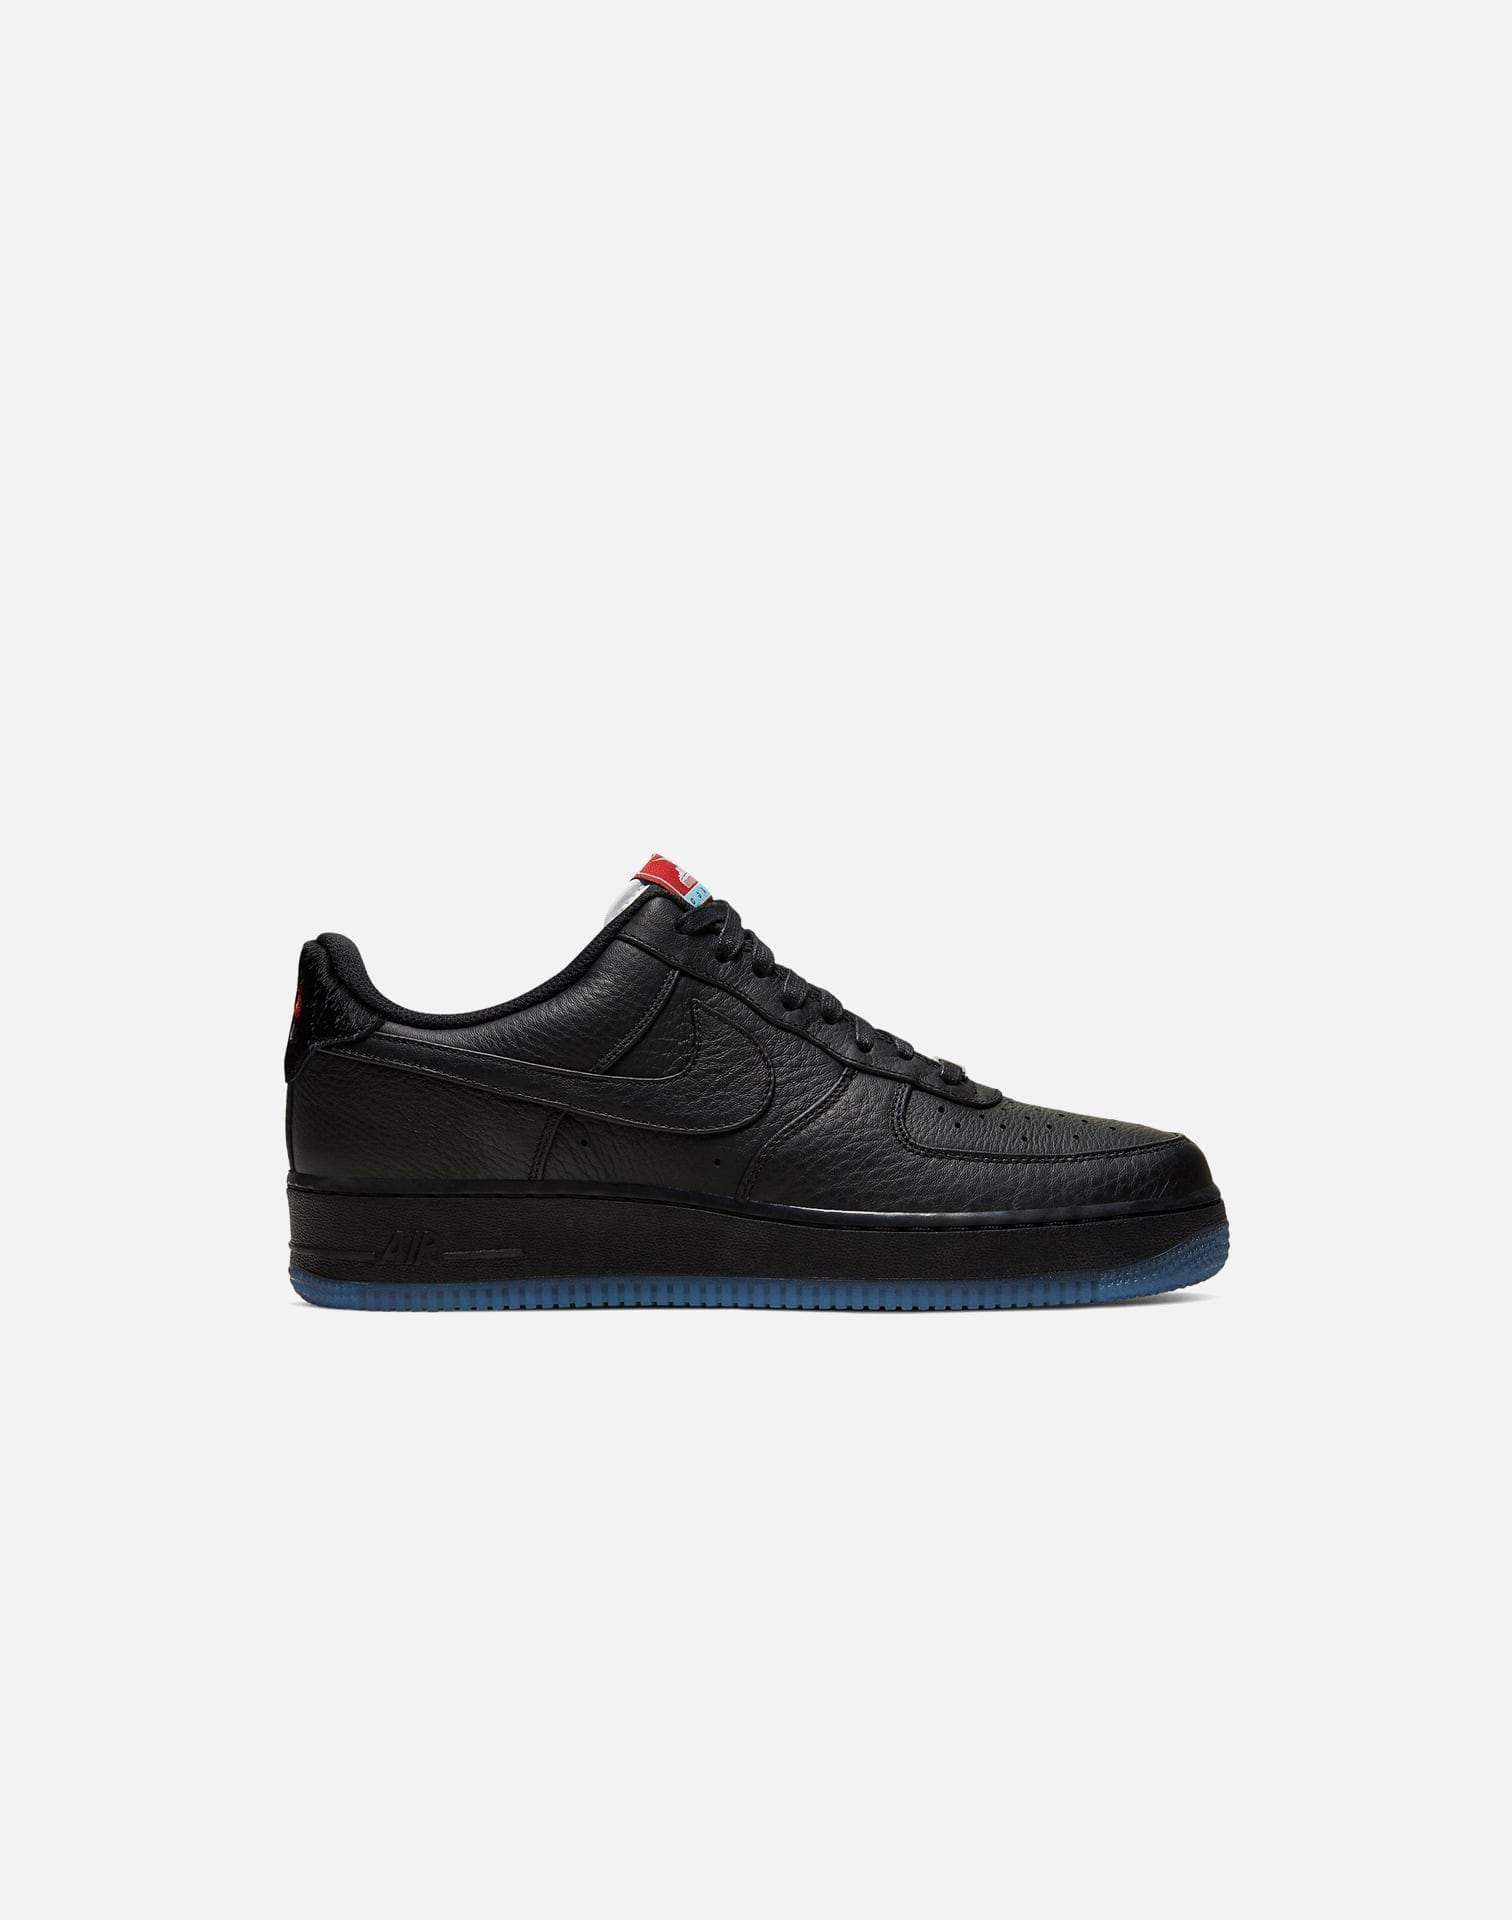 Nike AIR FORCE 1 '07 'PREMIUM CHICAGO' GRADE-SCHOOL